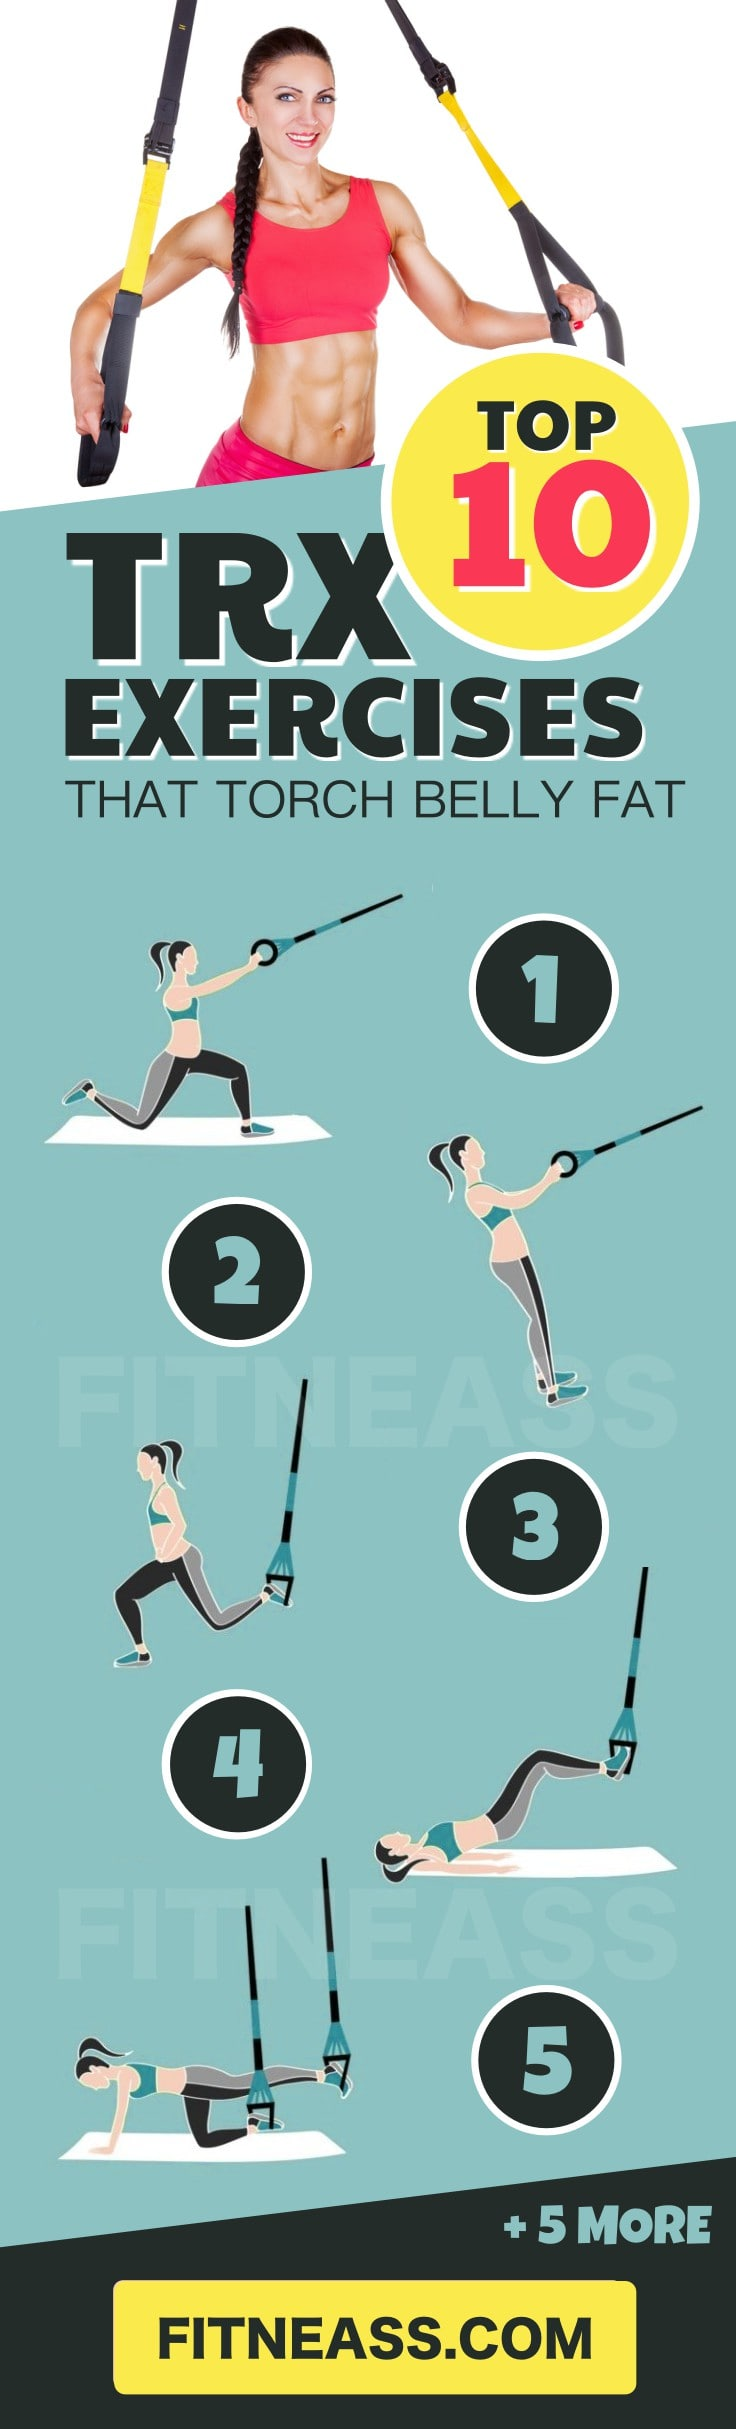 Top 10 TRX Exercises That Torch Belly Fat